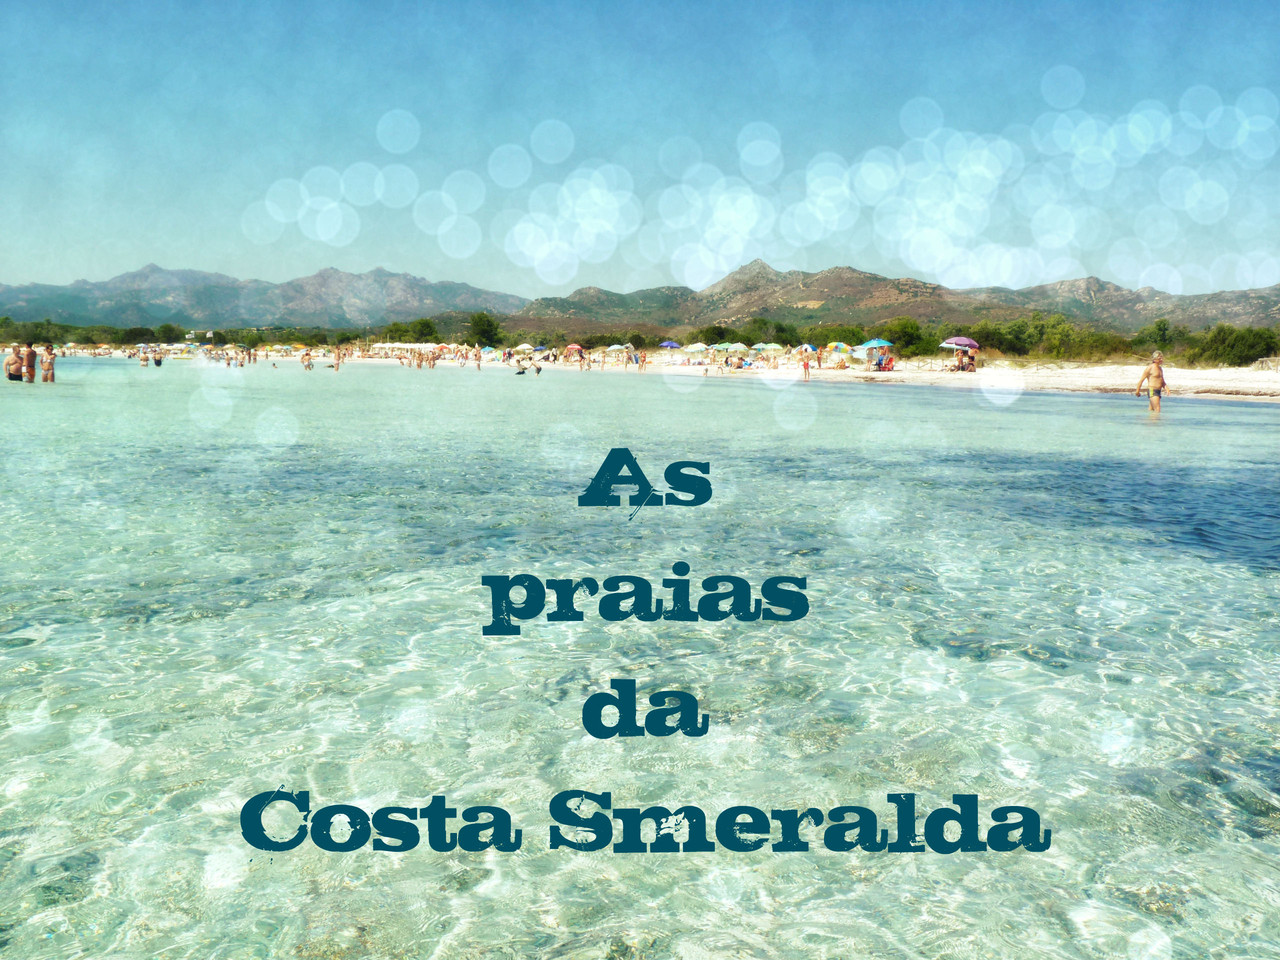 As praias da Costa Smeralda.jpg